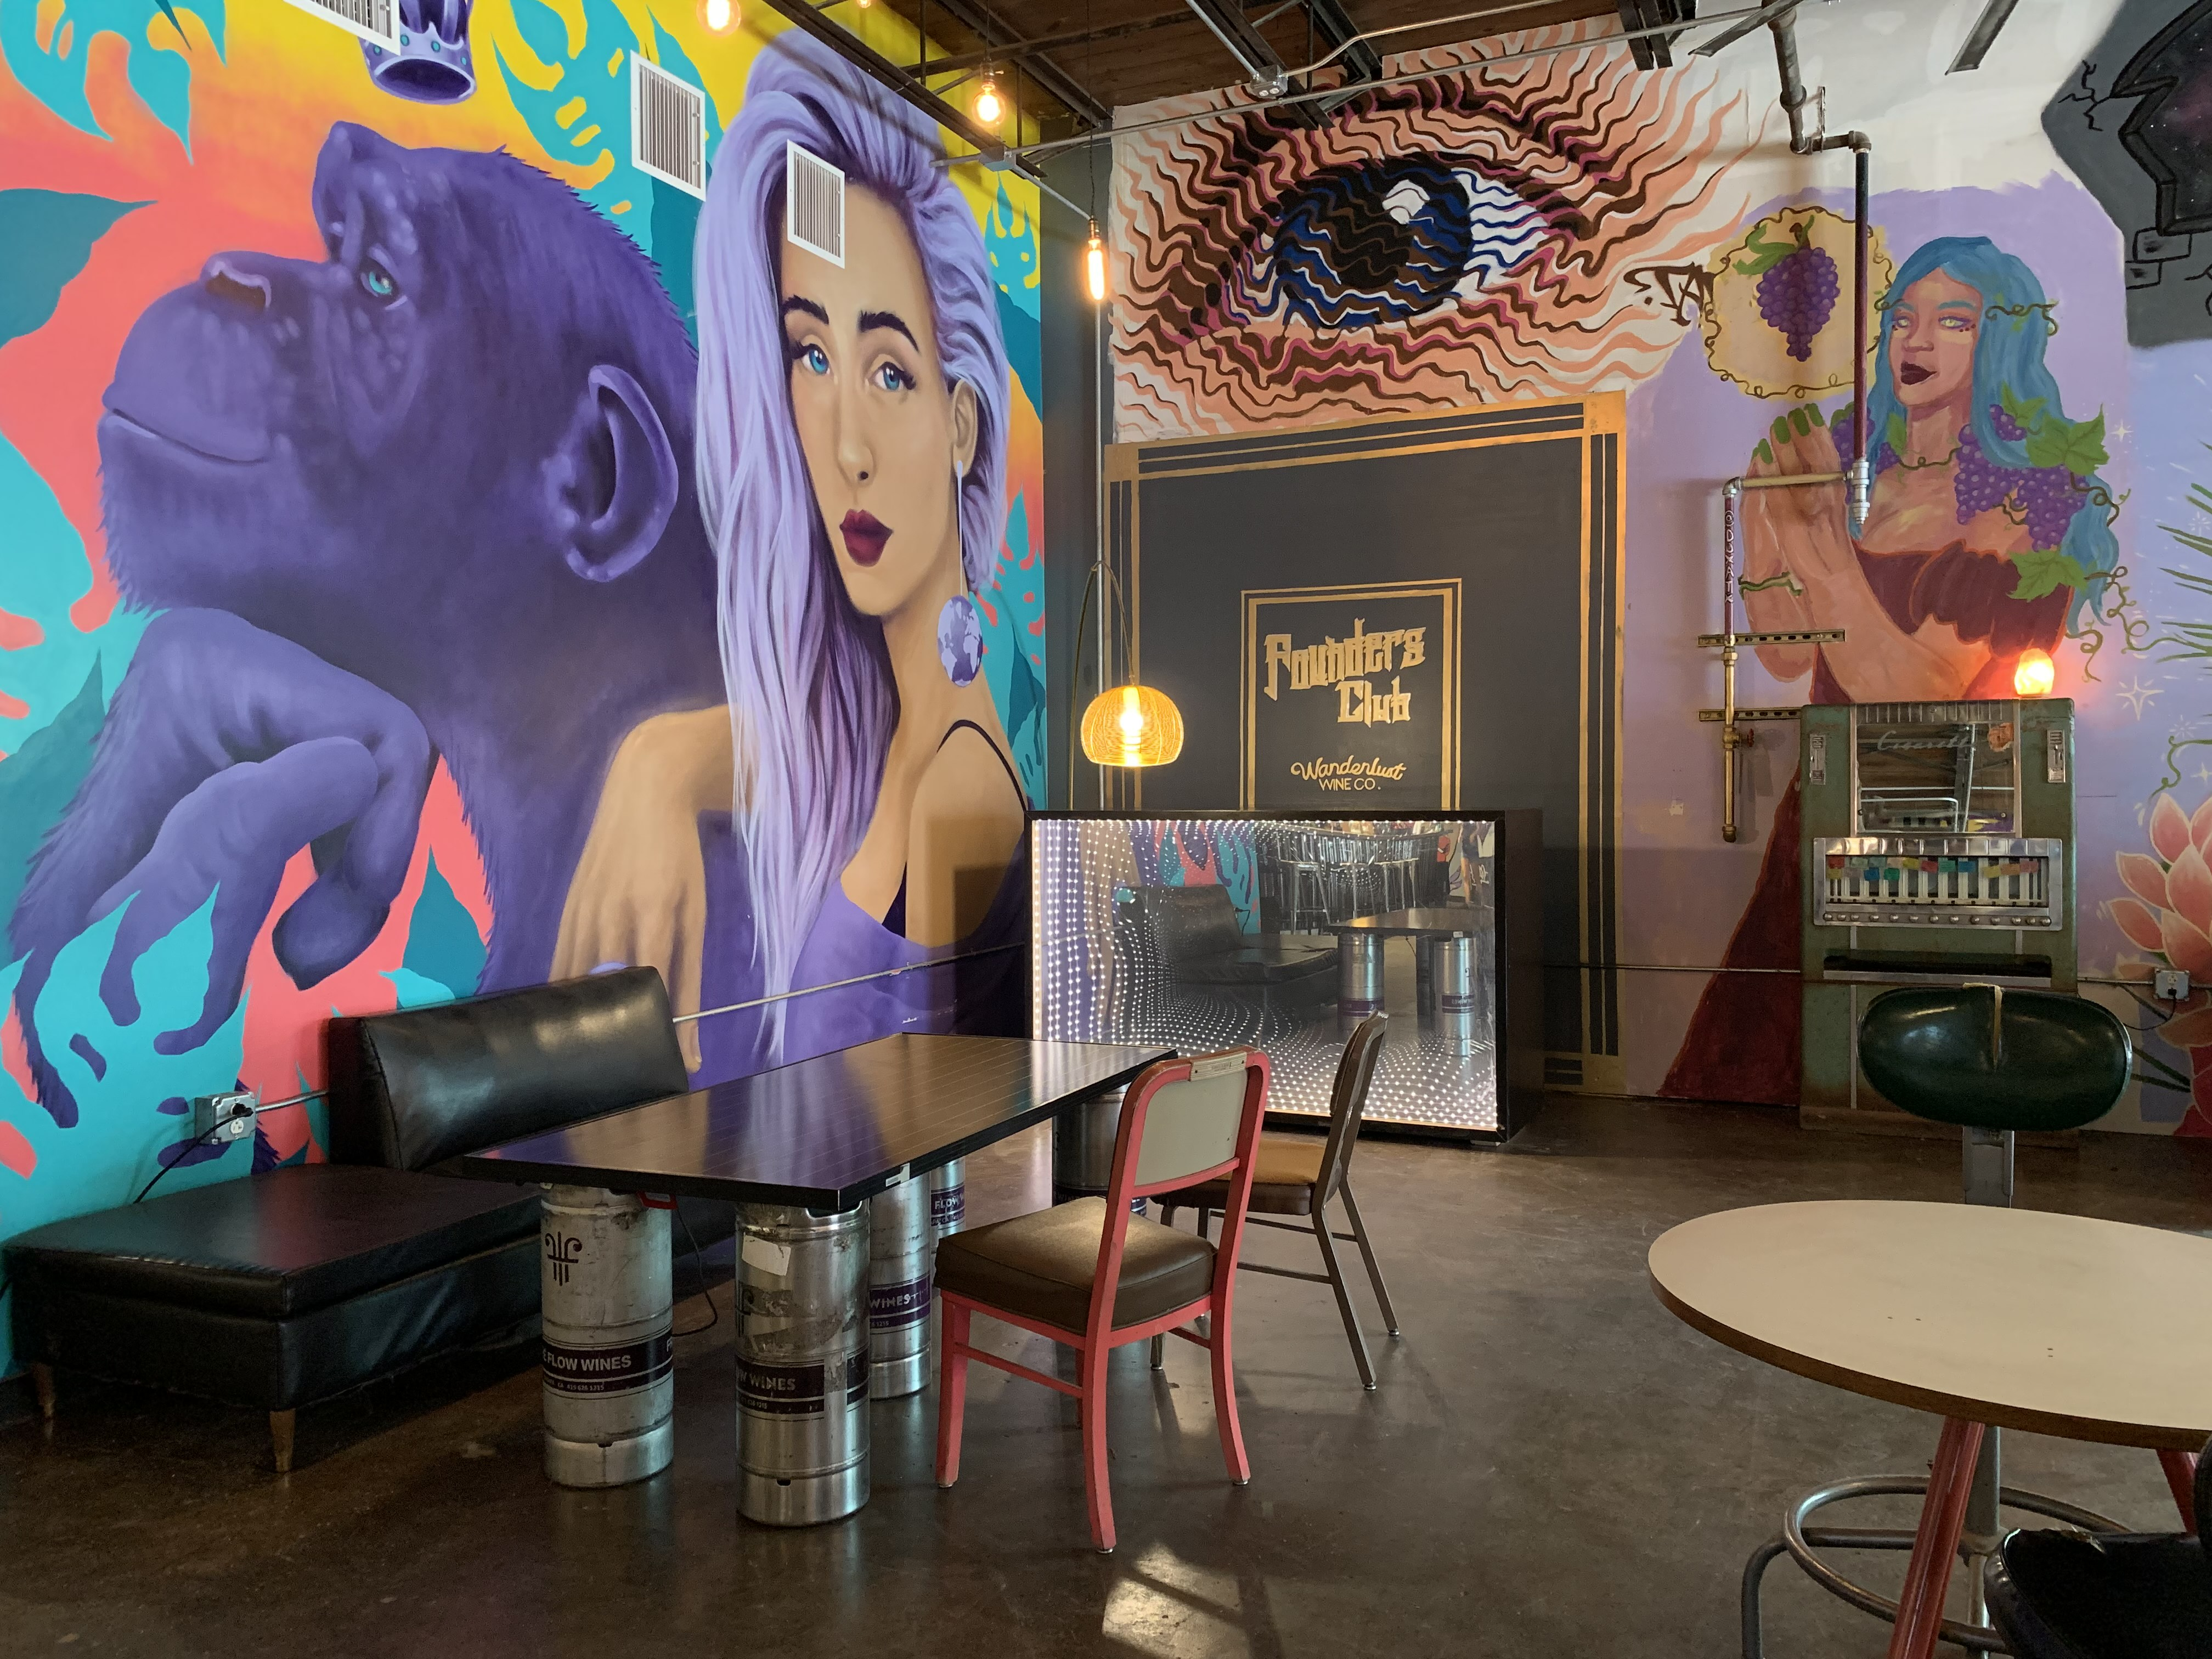 A table with a bunch of brightly colored murals (a woman, a chimpanzee, an eye, etc.)